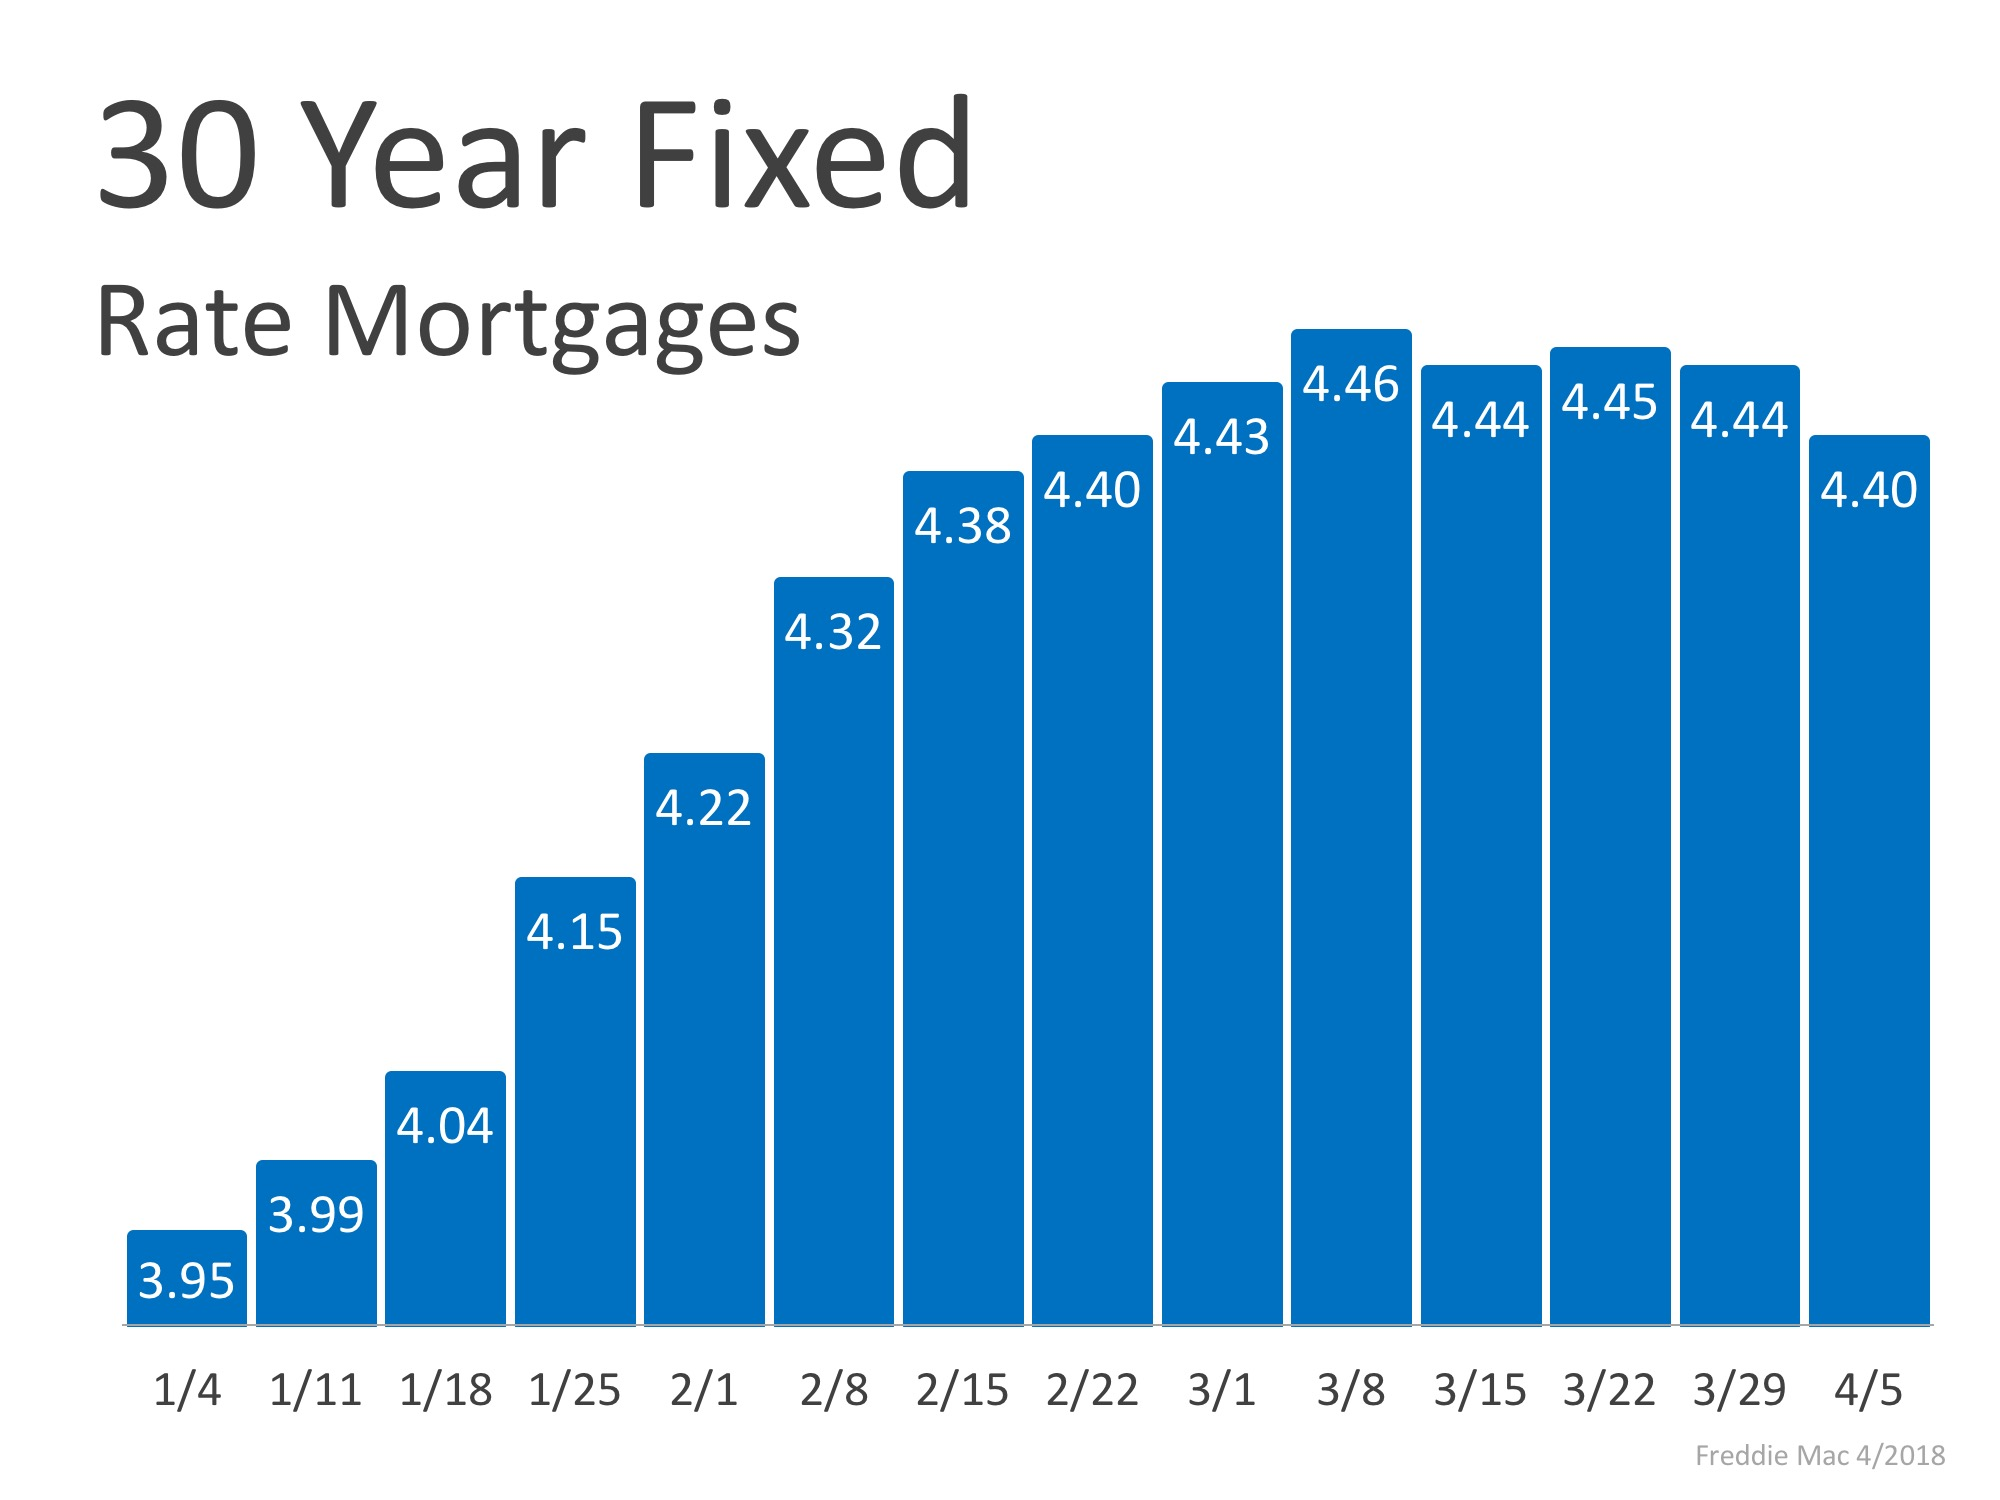 First Time Home Buyers, For Buyers, For Sellers, Interest Rates, Move-Up Buyers